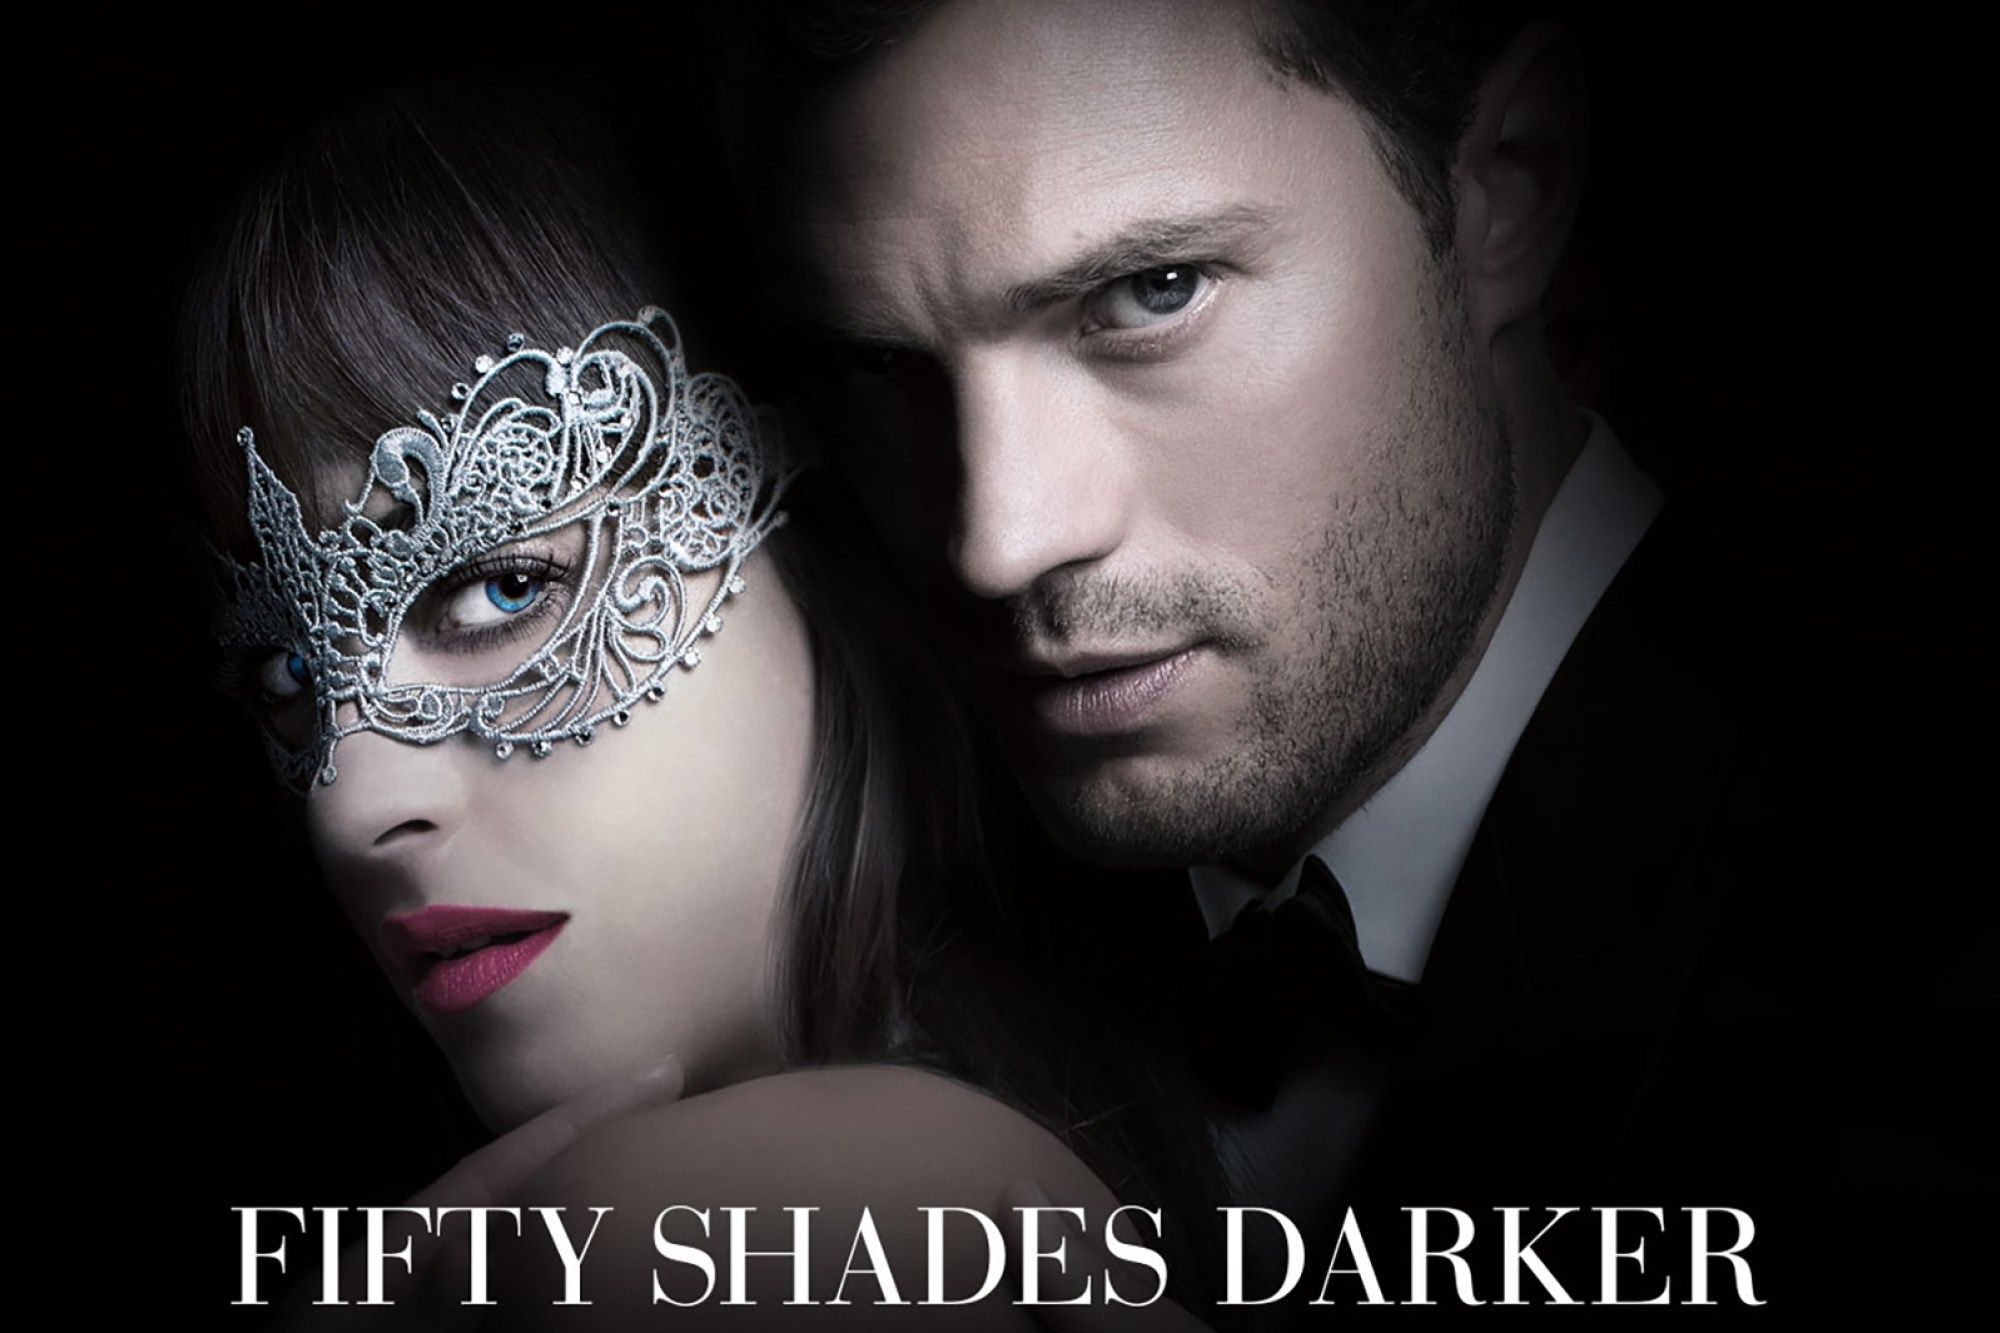 fifty shades darker full movie free watch online 123 movies